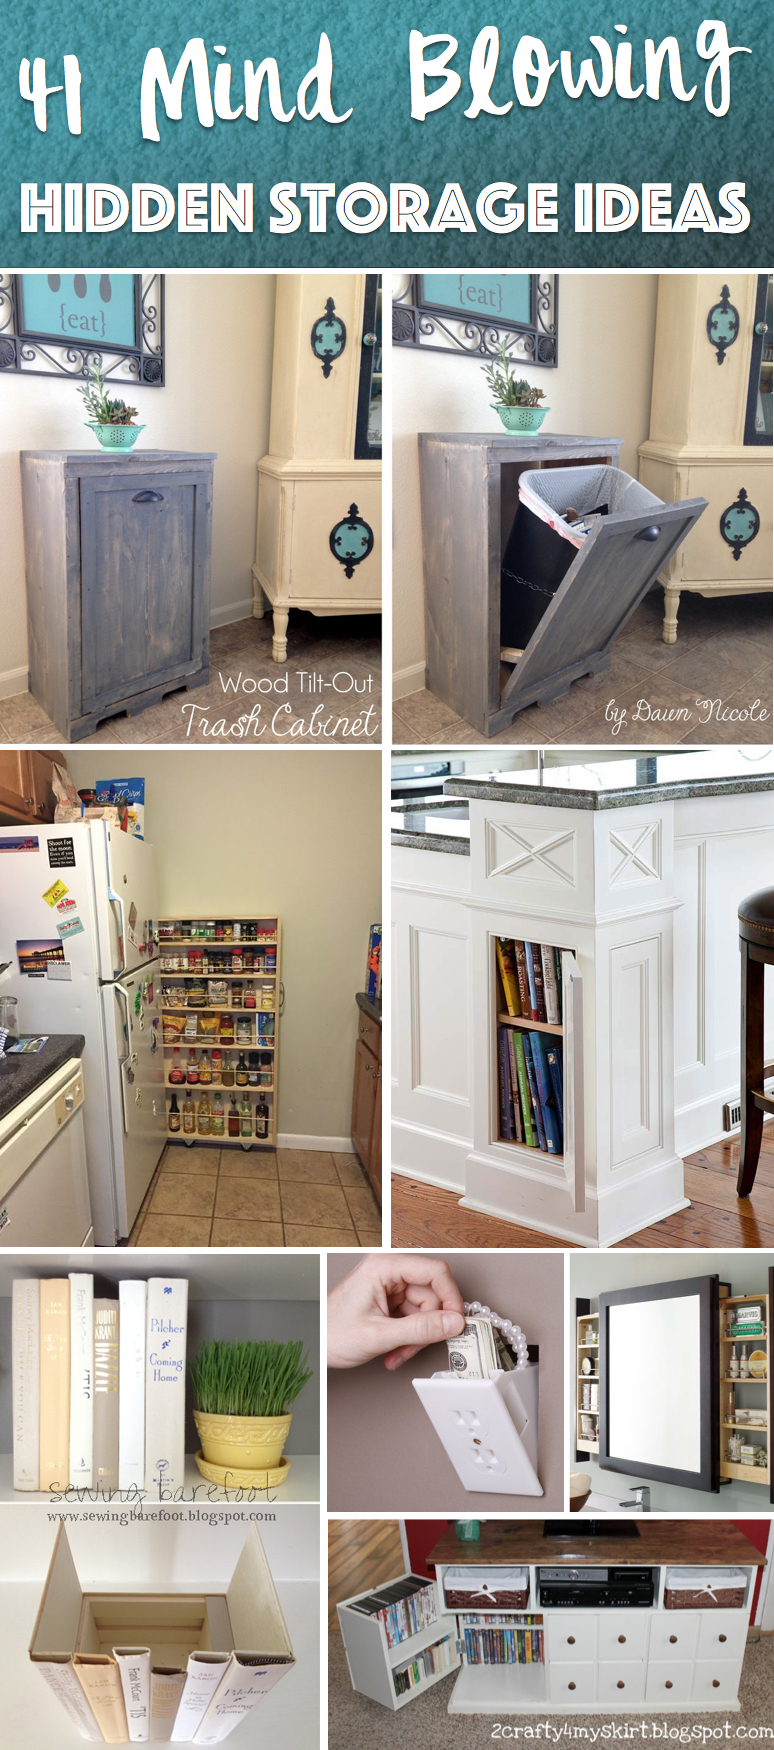 41 Mind Blowing Hidden Storage Ideas Making A Clever Use Of